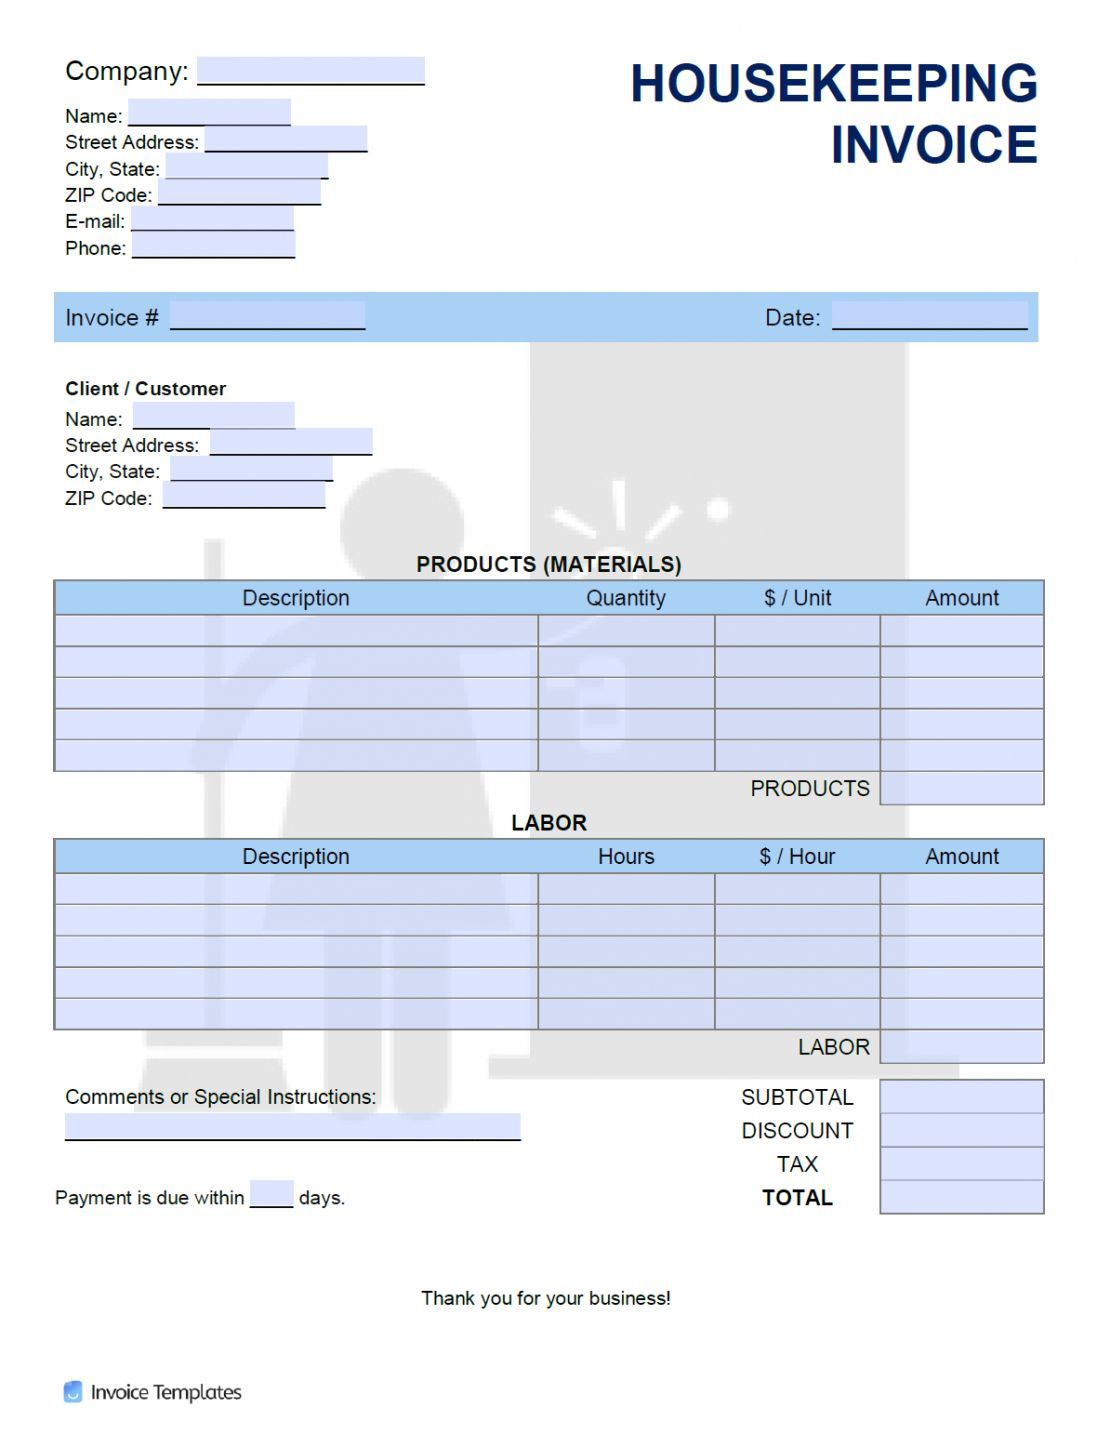 How To Send A House Cleaning Invoice Template Doc Sample In 2021 Invoice Template Receipt Template Clean House